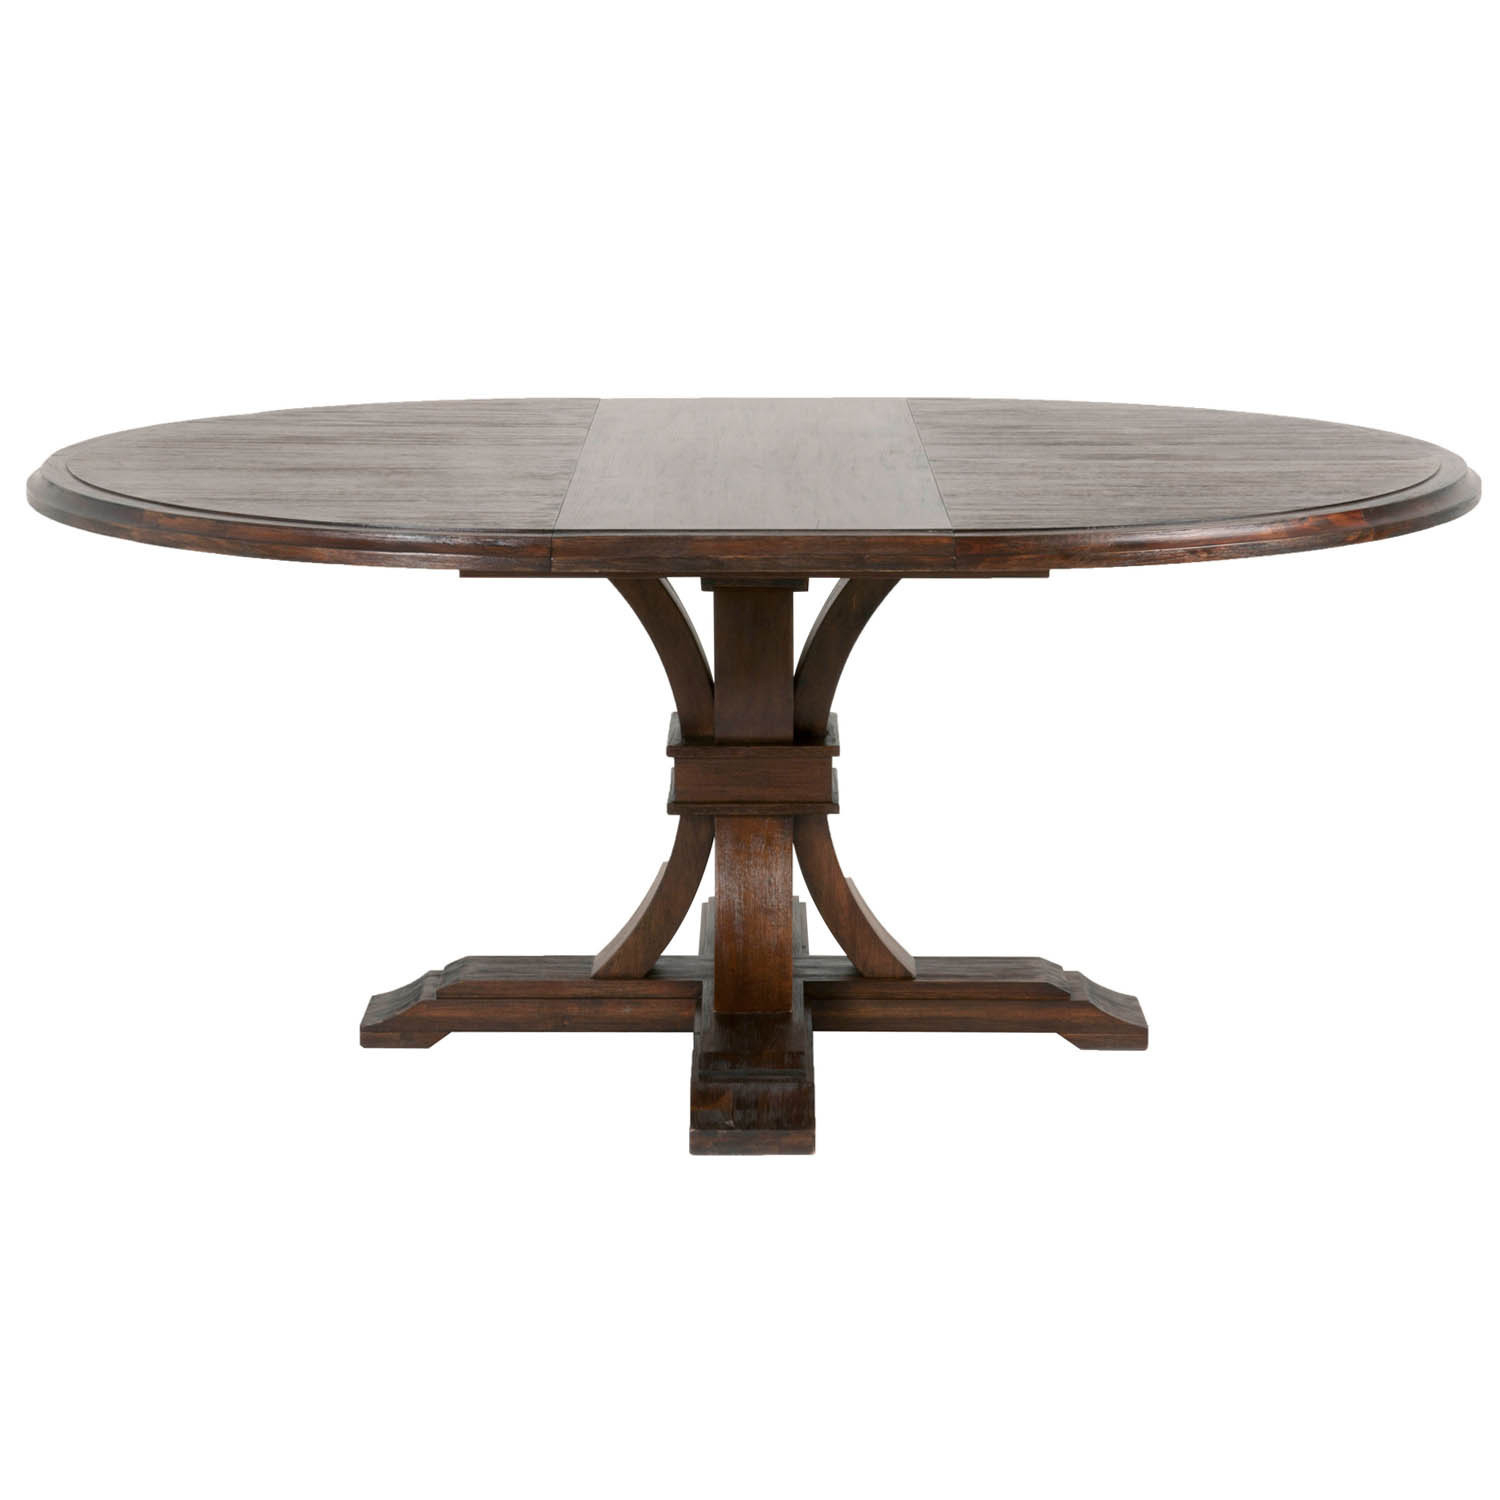 Darby Round Extension Dining Table, Rustic Java – Brown For Most Up To Date Rustic Mahogany Benchwright Pedestal Extending Dining Tables (View 10 of 25)